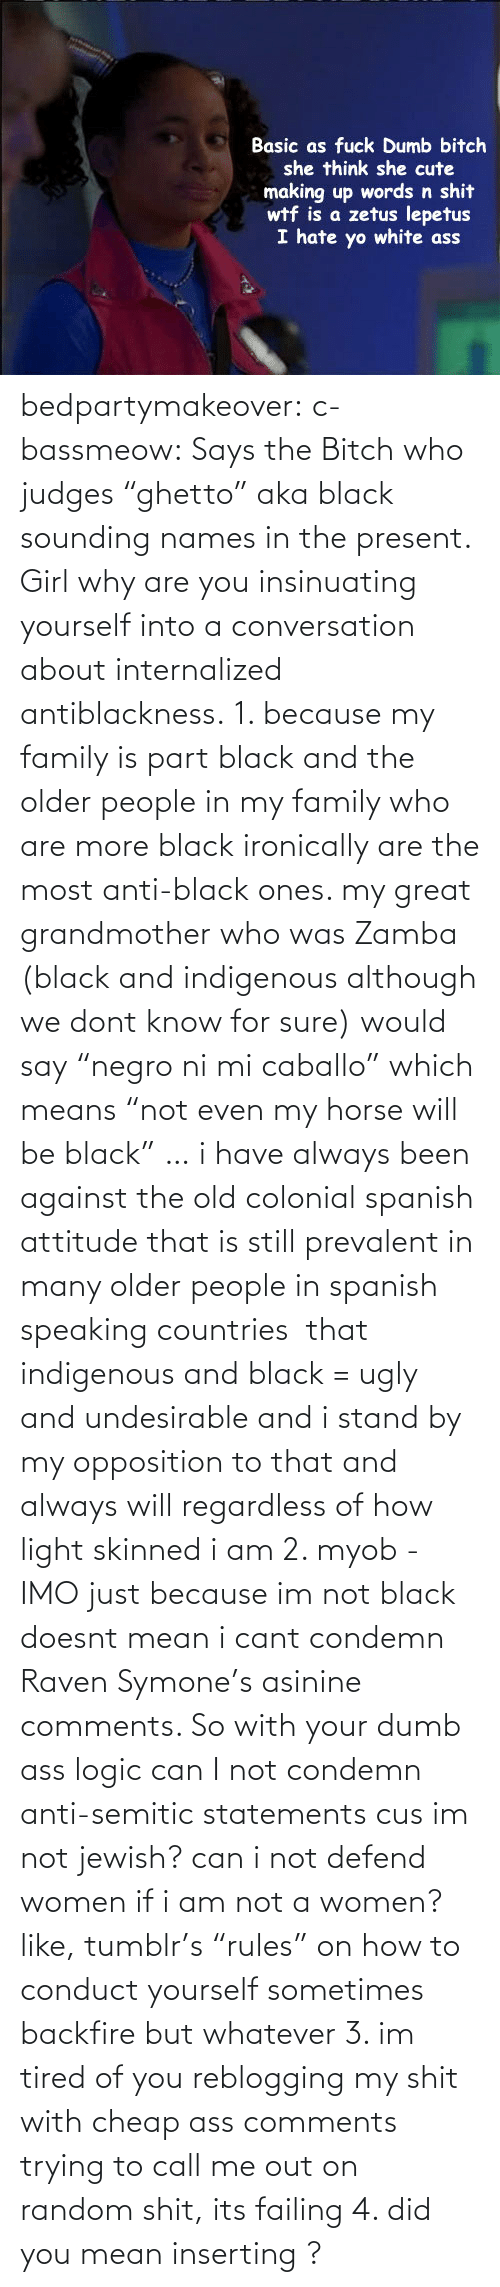 """But Whatever: Basic as fuck Dumb bitch  she think she cute  making up words n shit  wtf is a zetus lepetus  I hate yo white ass bedpartymakeover:  c-bassmeow:  Says the Bitch who judges """"ghetto"""" aka black sounding names in the present.  Girl why are you insinuating yourself into a conversation about internalized antiblackness.   1. because my family is part black and the older people in my family who are more black ironically are the most anti-black ones. my great grandmother who was Zamba (black and indigenous although we dont know for sure) would say""""negro ni mi caballo"""" which means""""not even my horse will be black"""" … i have always been against the old colonial spanish attitude that is still prevalent in many older people in spanish speaking countries that indigenous and black = ugly and undesirable and i stand by my opposition to that and always will regardless of how light skinned i am2. myob - IMO just because im not black doesnt mean i cant condemn Raven Symone's asinine comments. So with your dumb ass logic can I not condemn anti-semitic statements cus im not jewish? can i not defend women if i am not a women? like, tumblr's""""rules"""" on how to conduct yourself sometimes backfire but whatever3. im tired of you reblogging my shit with cheap ass comments trying to call me out on random shit, its failing4. did you mean inserting ?"""